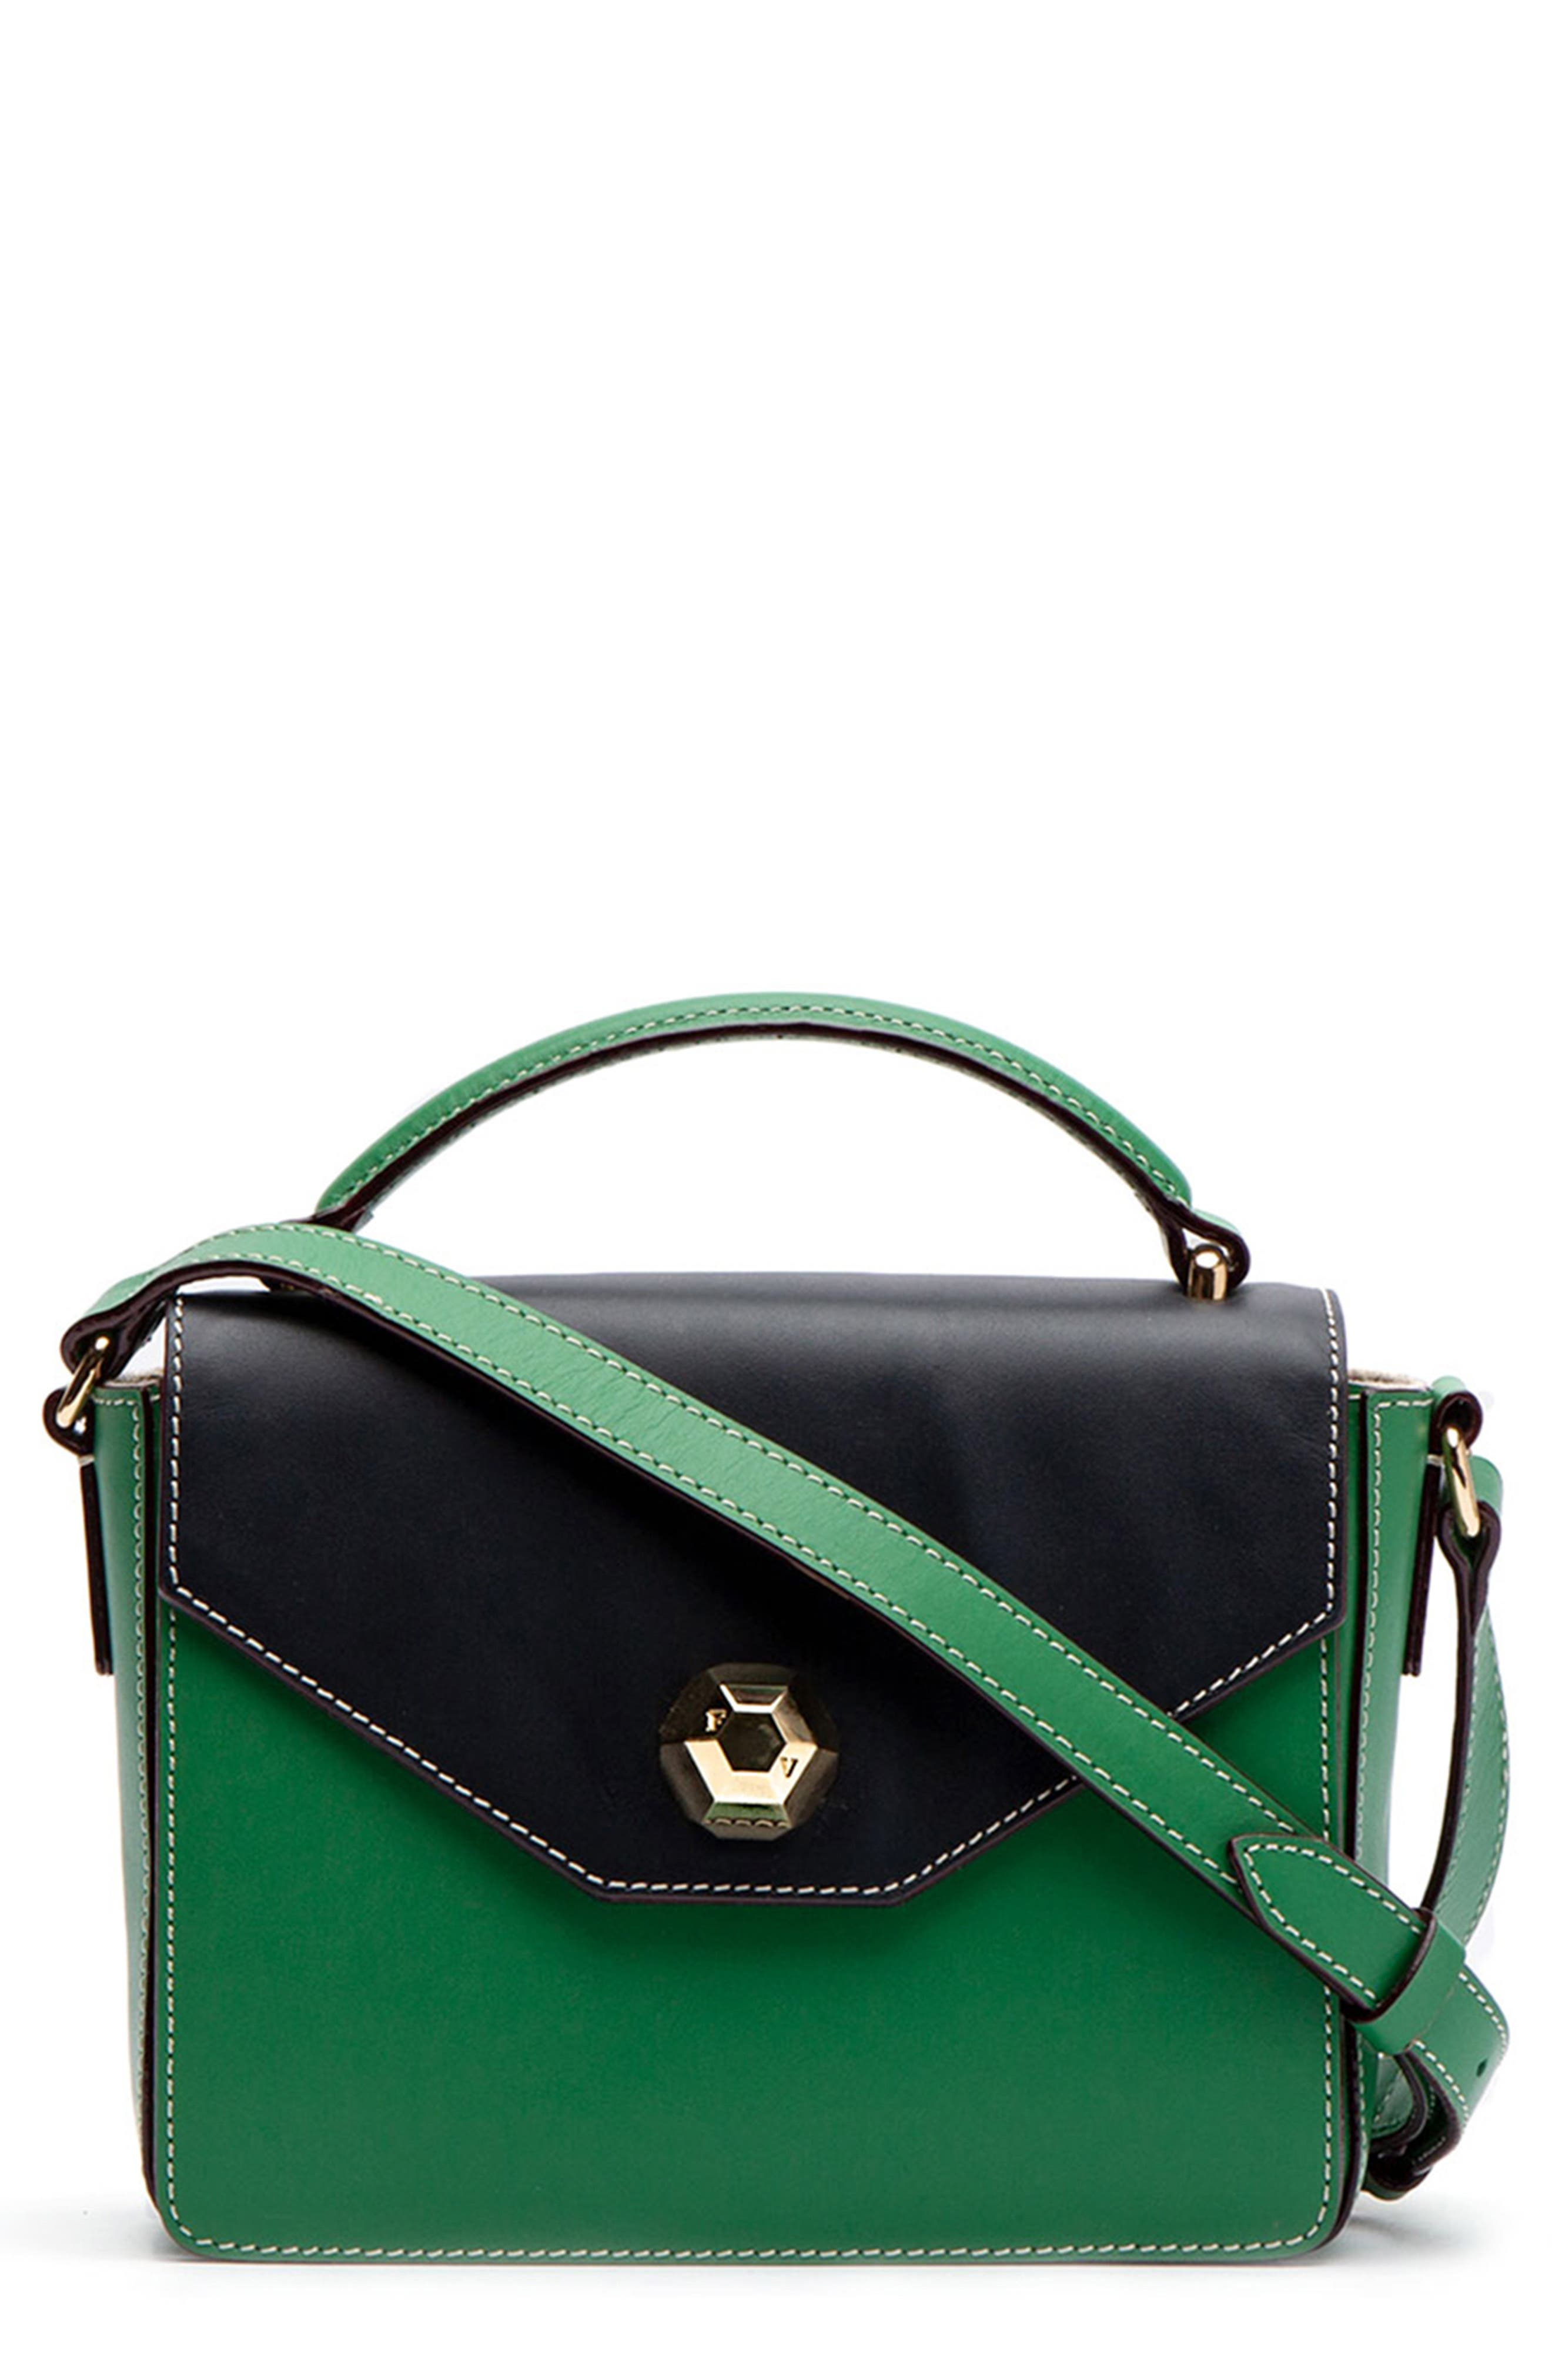 FRANCES VALENTINE Mini Midge Leather Crossbody Bag - Green in Green Ray/ Ink